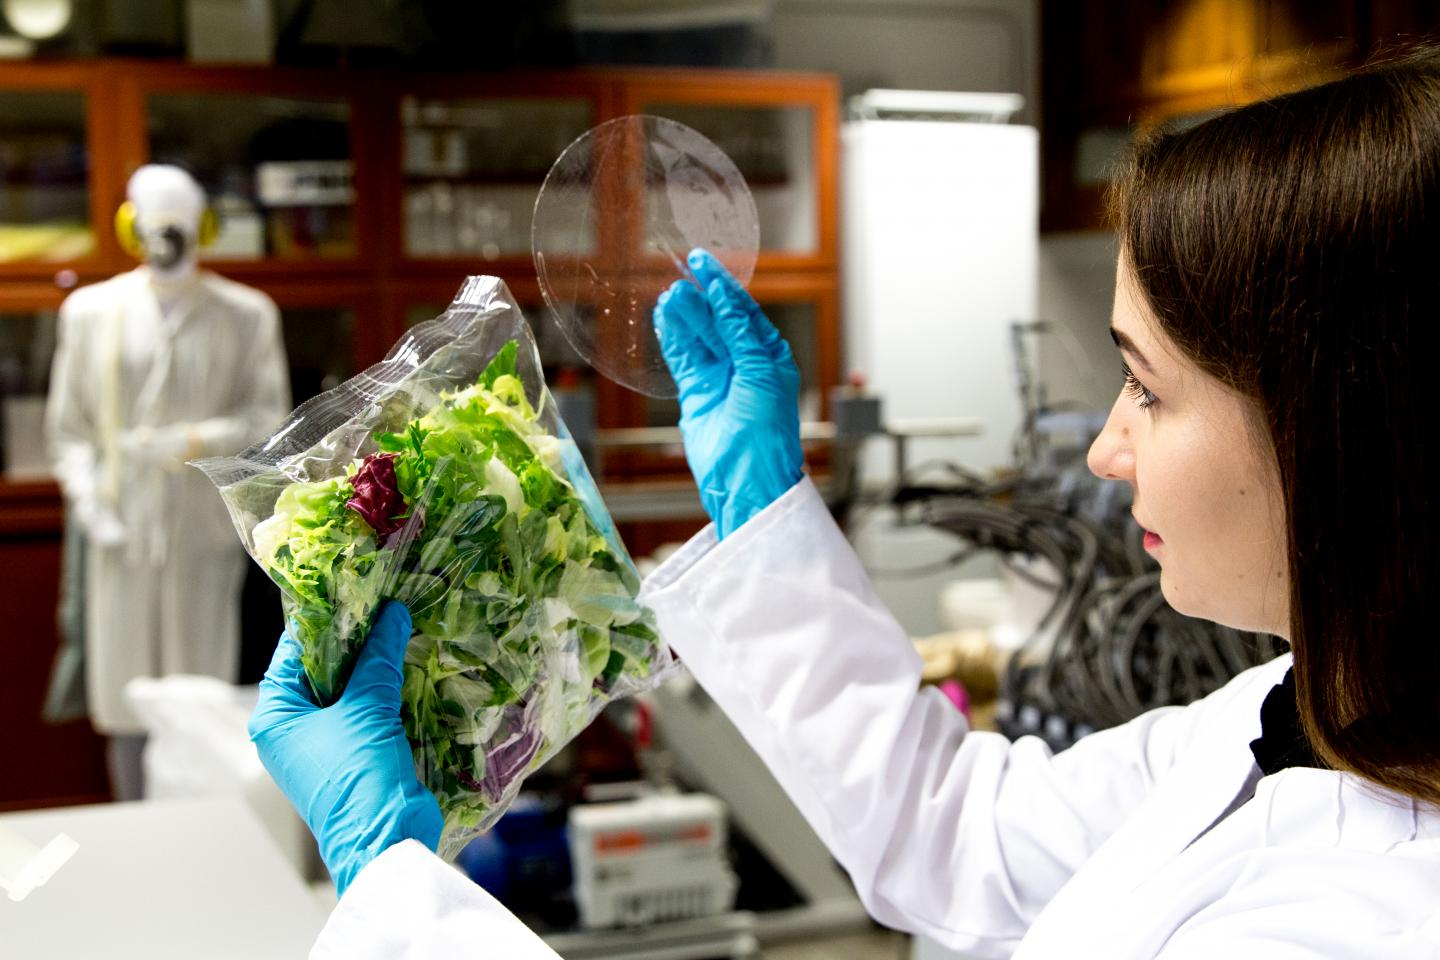 Antimicrobial Biodegradable Packages Keep Food Fresh